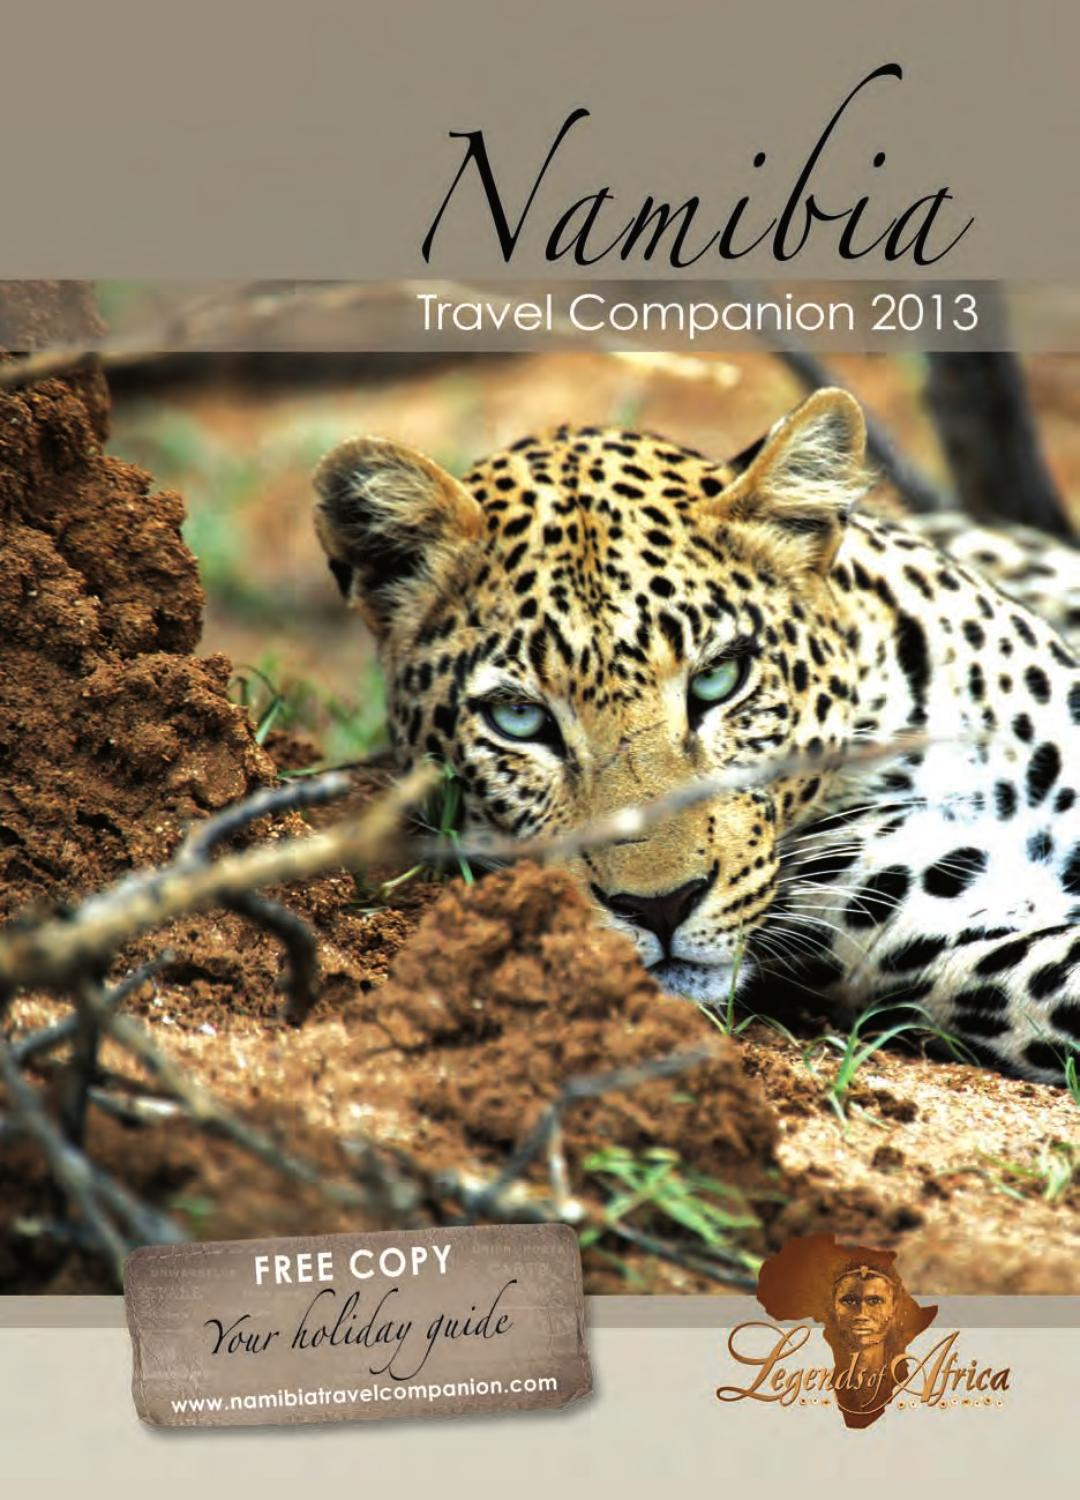 ISSUU - Namibia Travel Companion 2013 by Legends of Africa